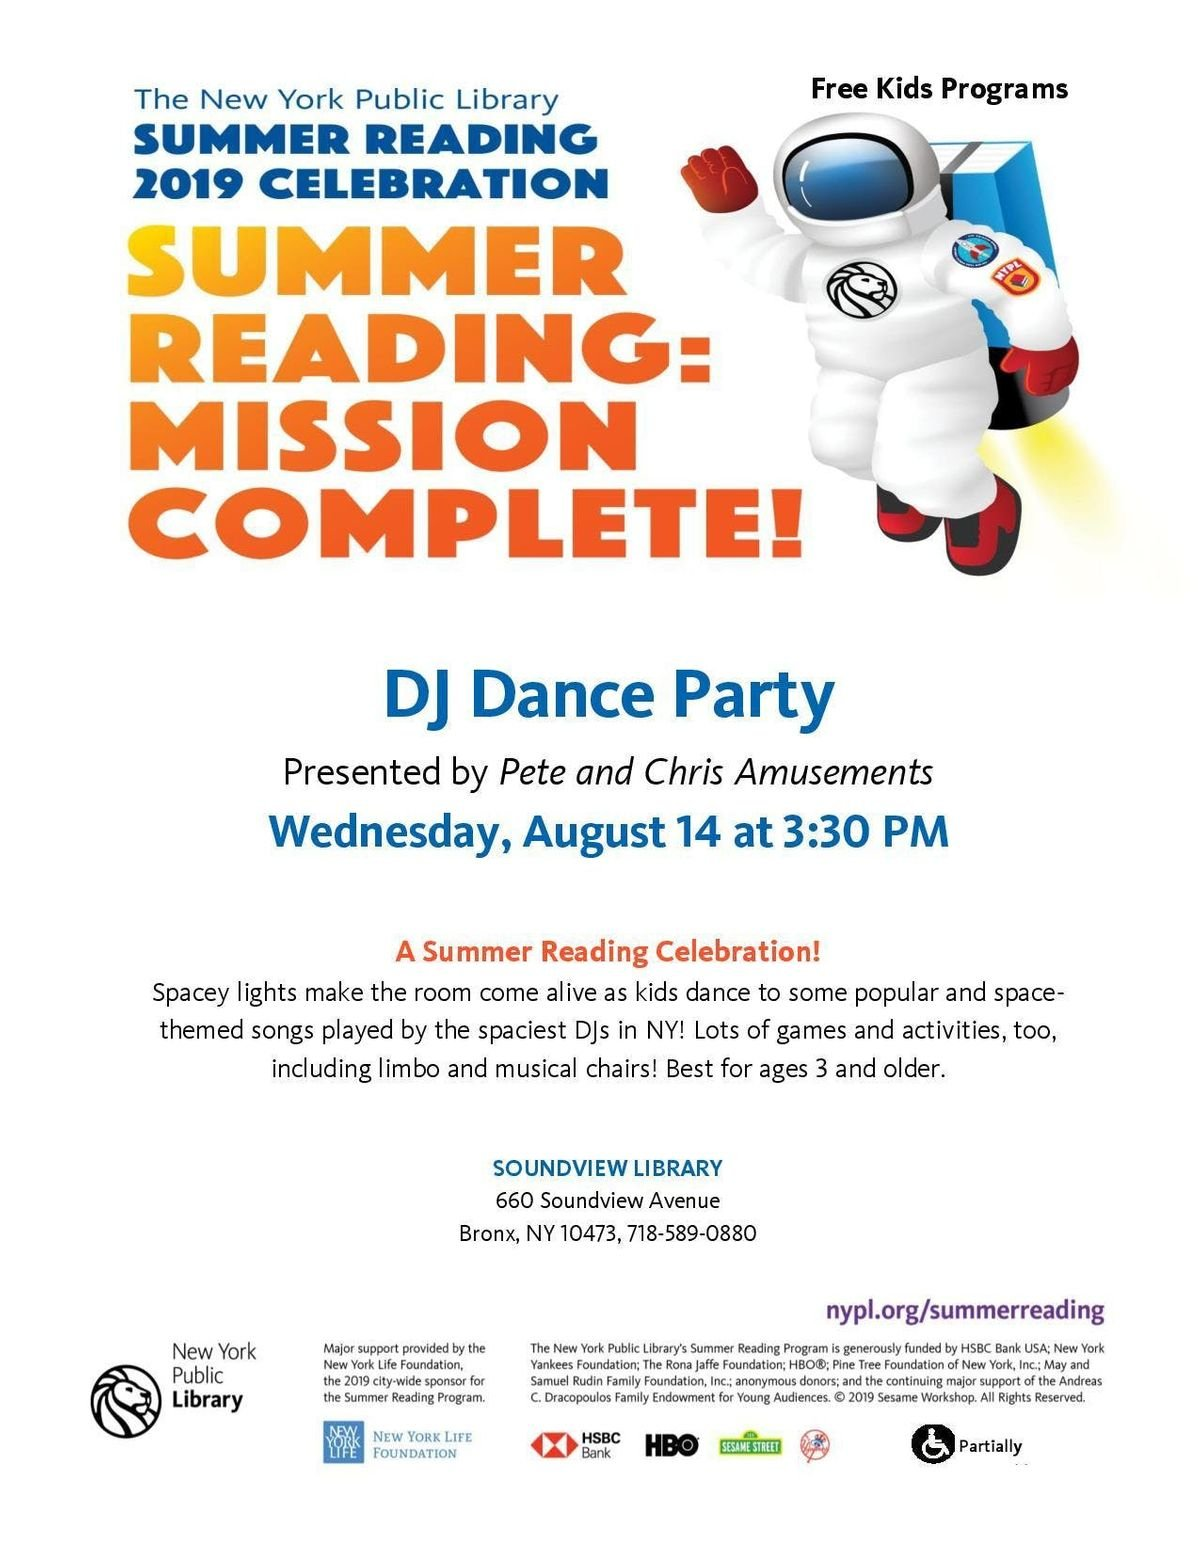 Summer Reading 2019 Celebration: DJ Dance Party at Soundview